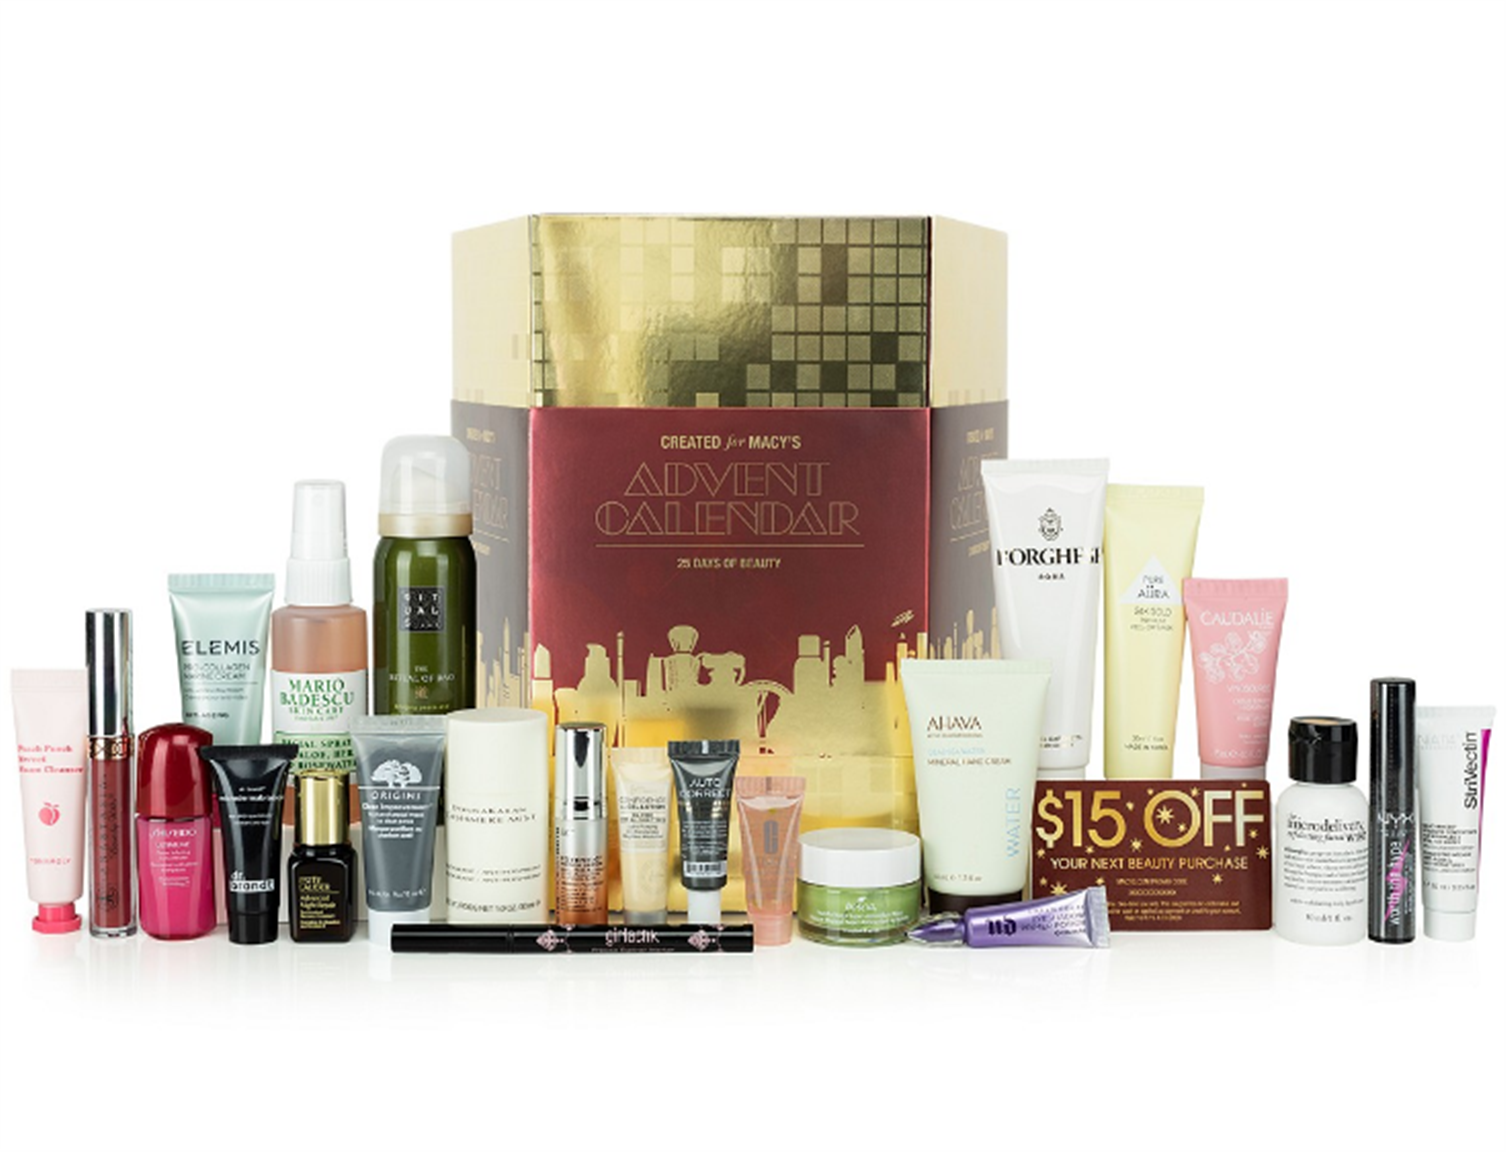 Macy's Beauty Advent Calendar Including 24 Beauty Products + A Surprise Gift and a $15 Gift Card Only $49.99, Reg $297.67